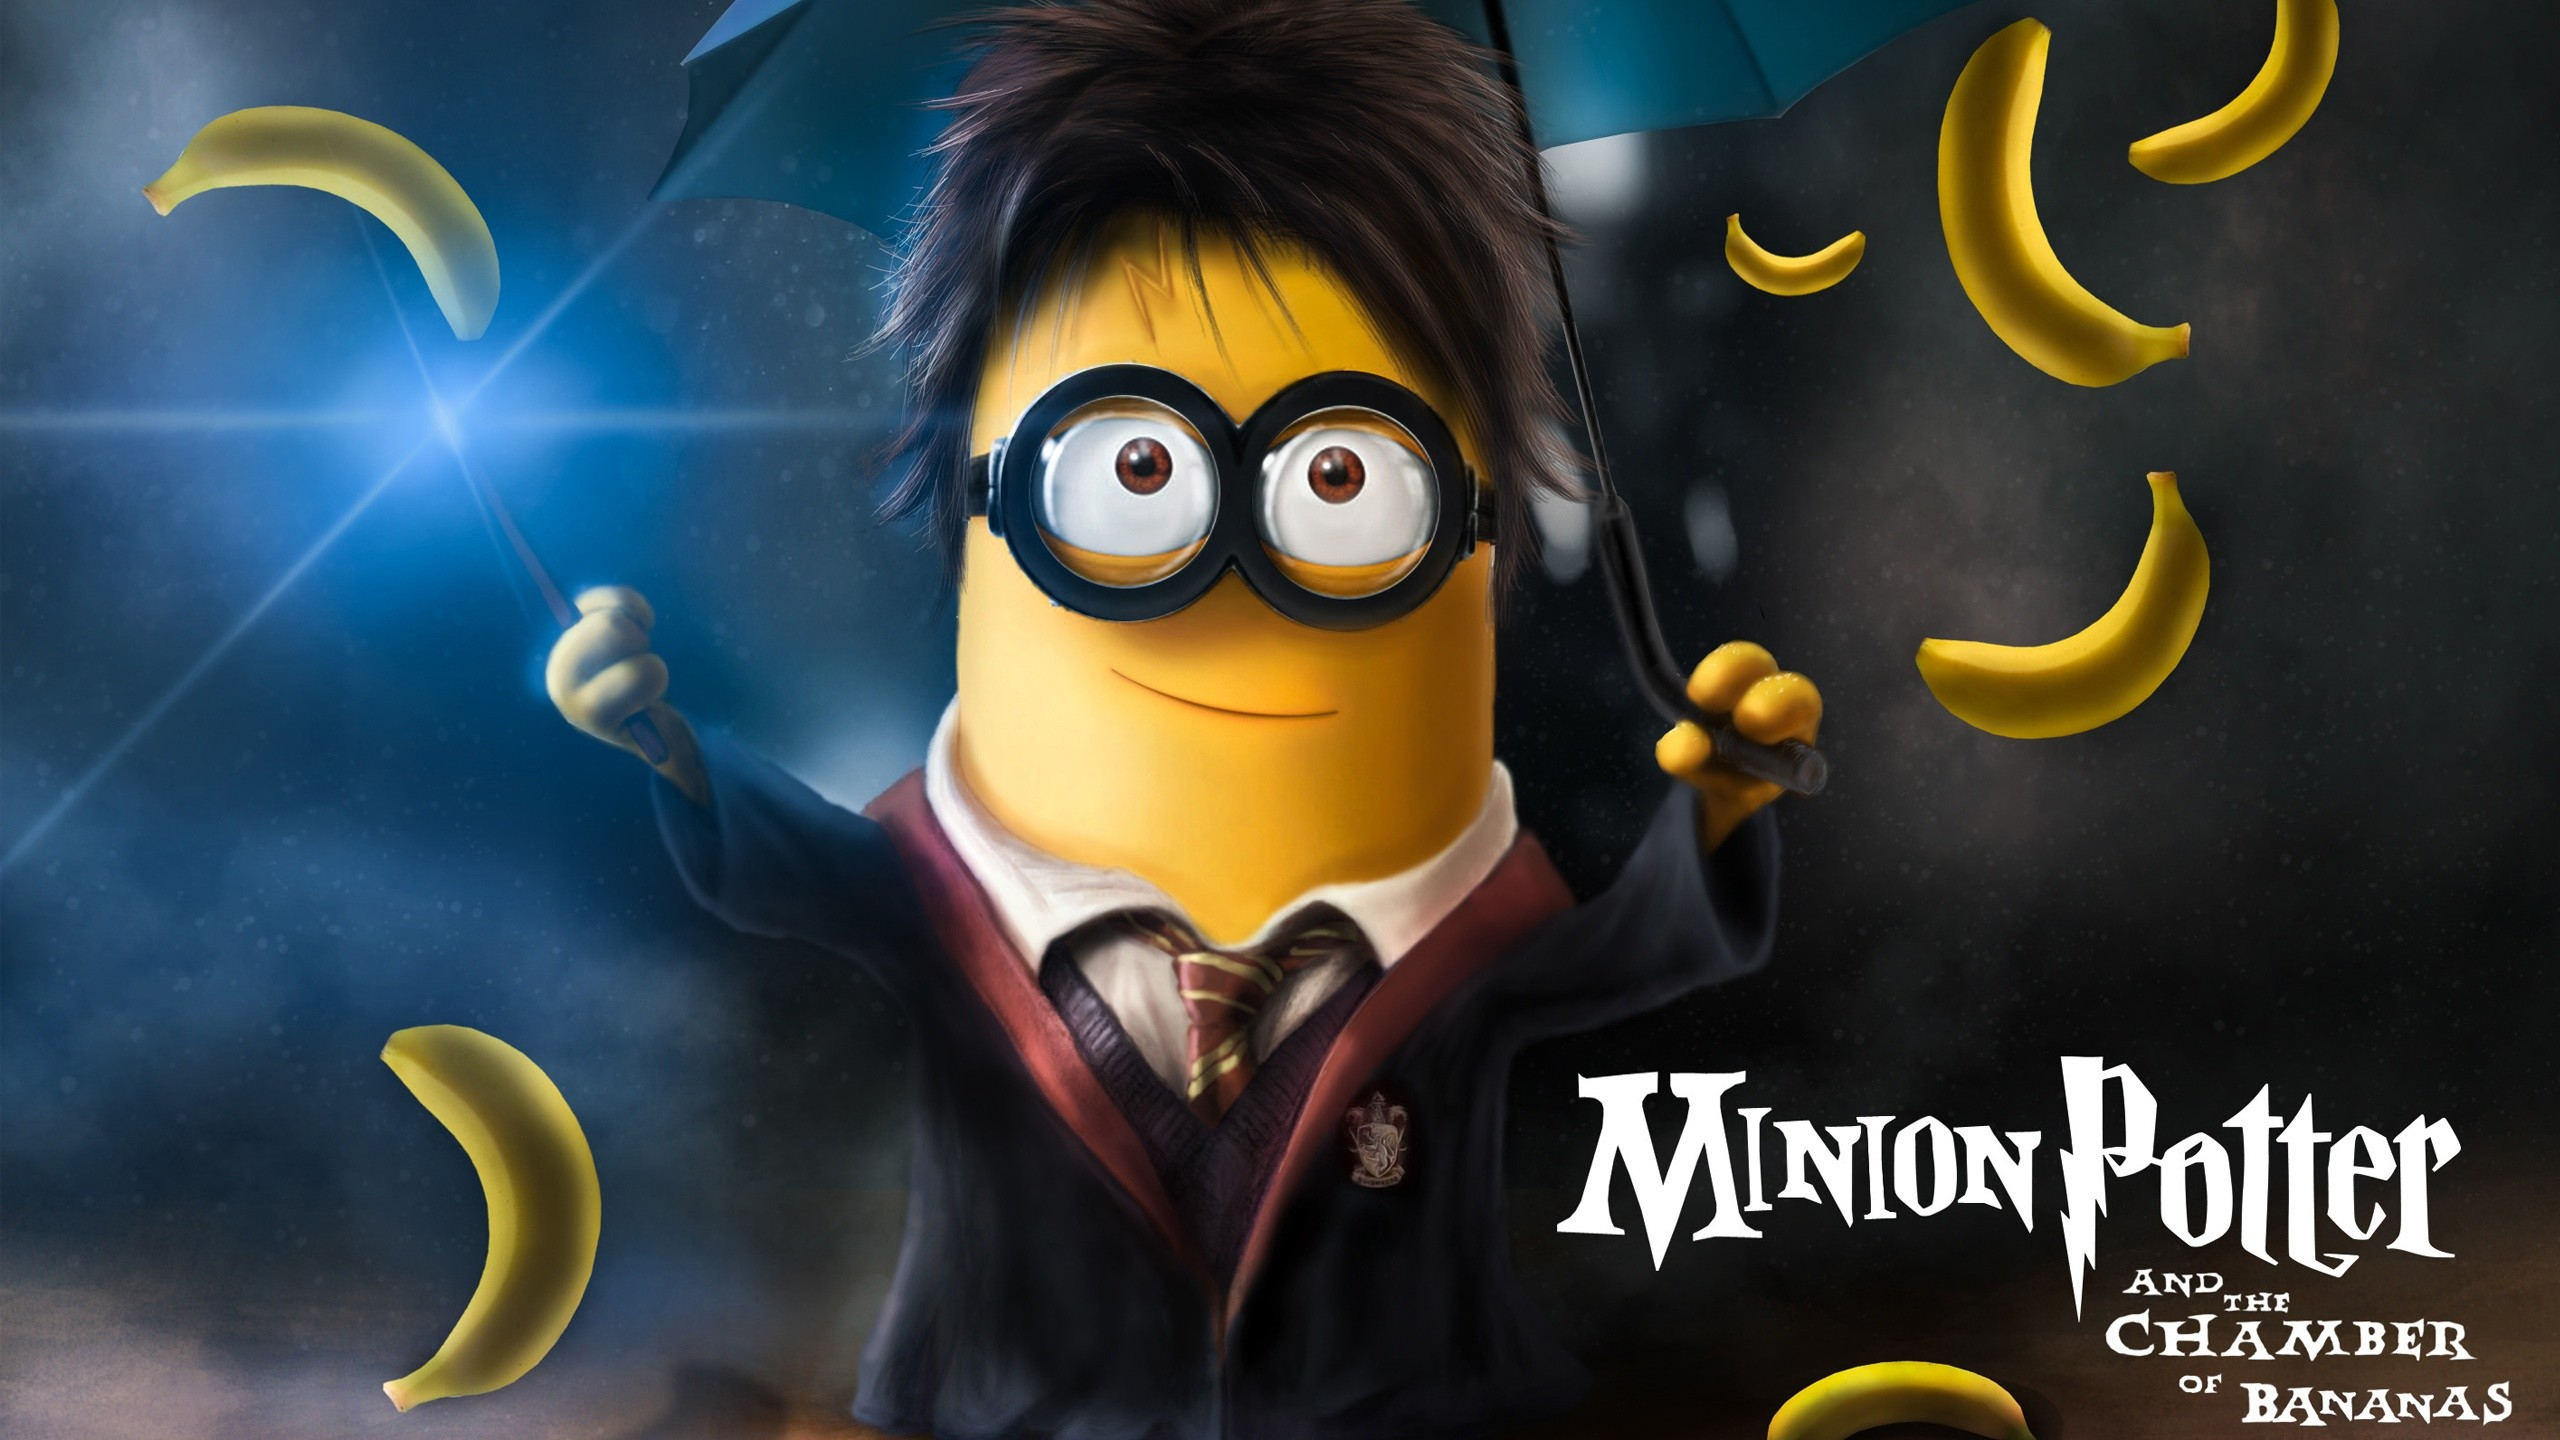 2560x1440 Minion Harry Potter, free computer desktop hd wallpapers, pictures, images